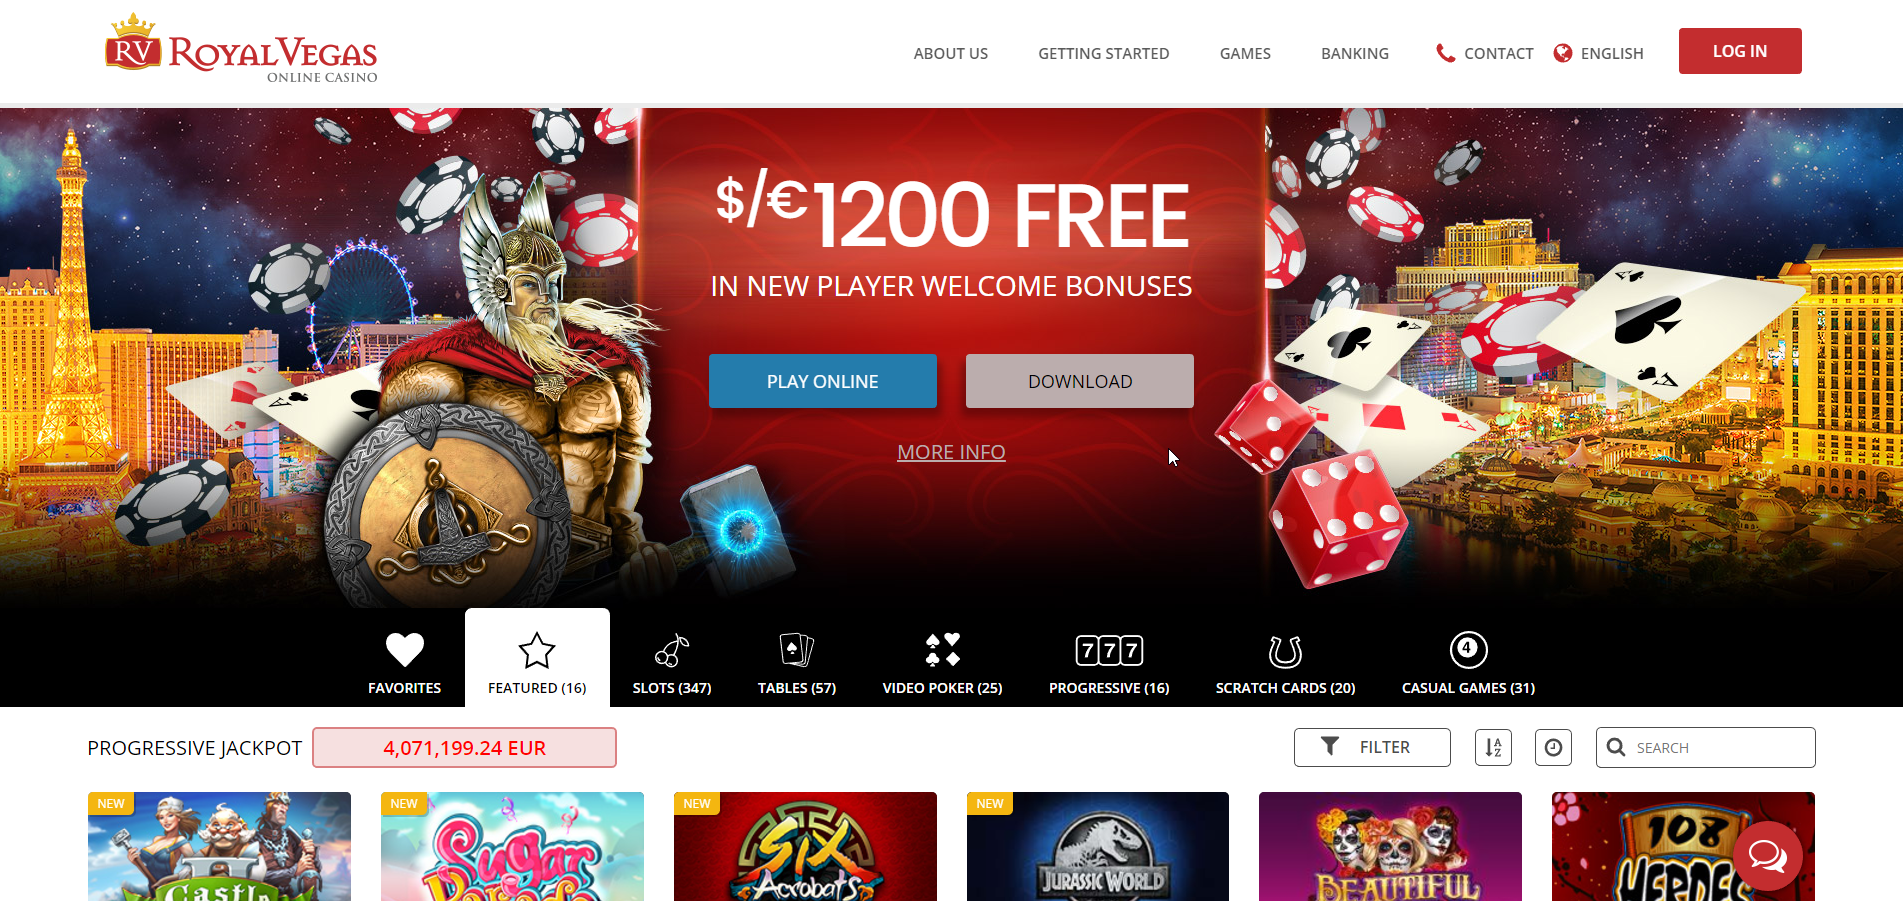 Fiz Casino Online Review With Promotions & Bonuses